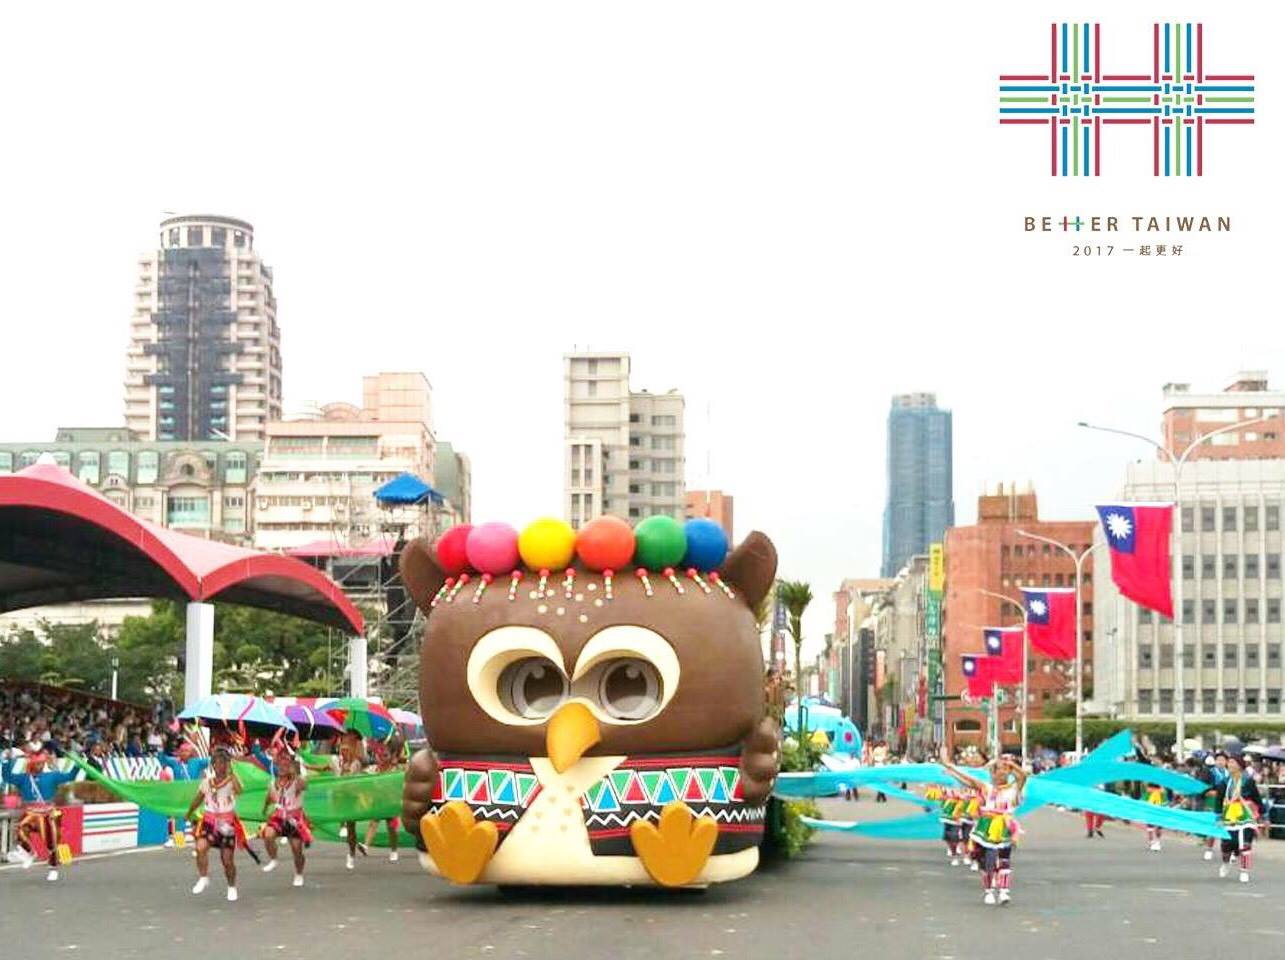 A float featuring Taiwan's aboriginal culture at the 2017 National Day Parade (Image: Facebook of the 2017 National Day Preparatory Committee)